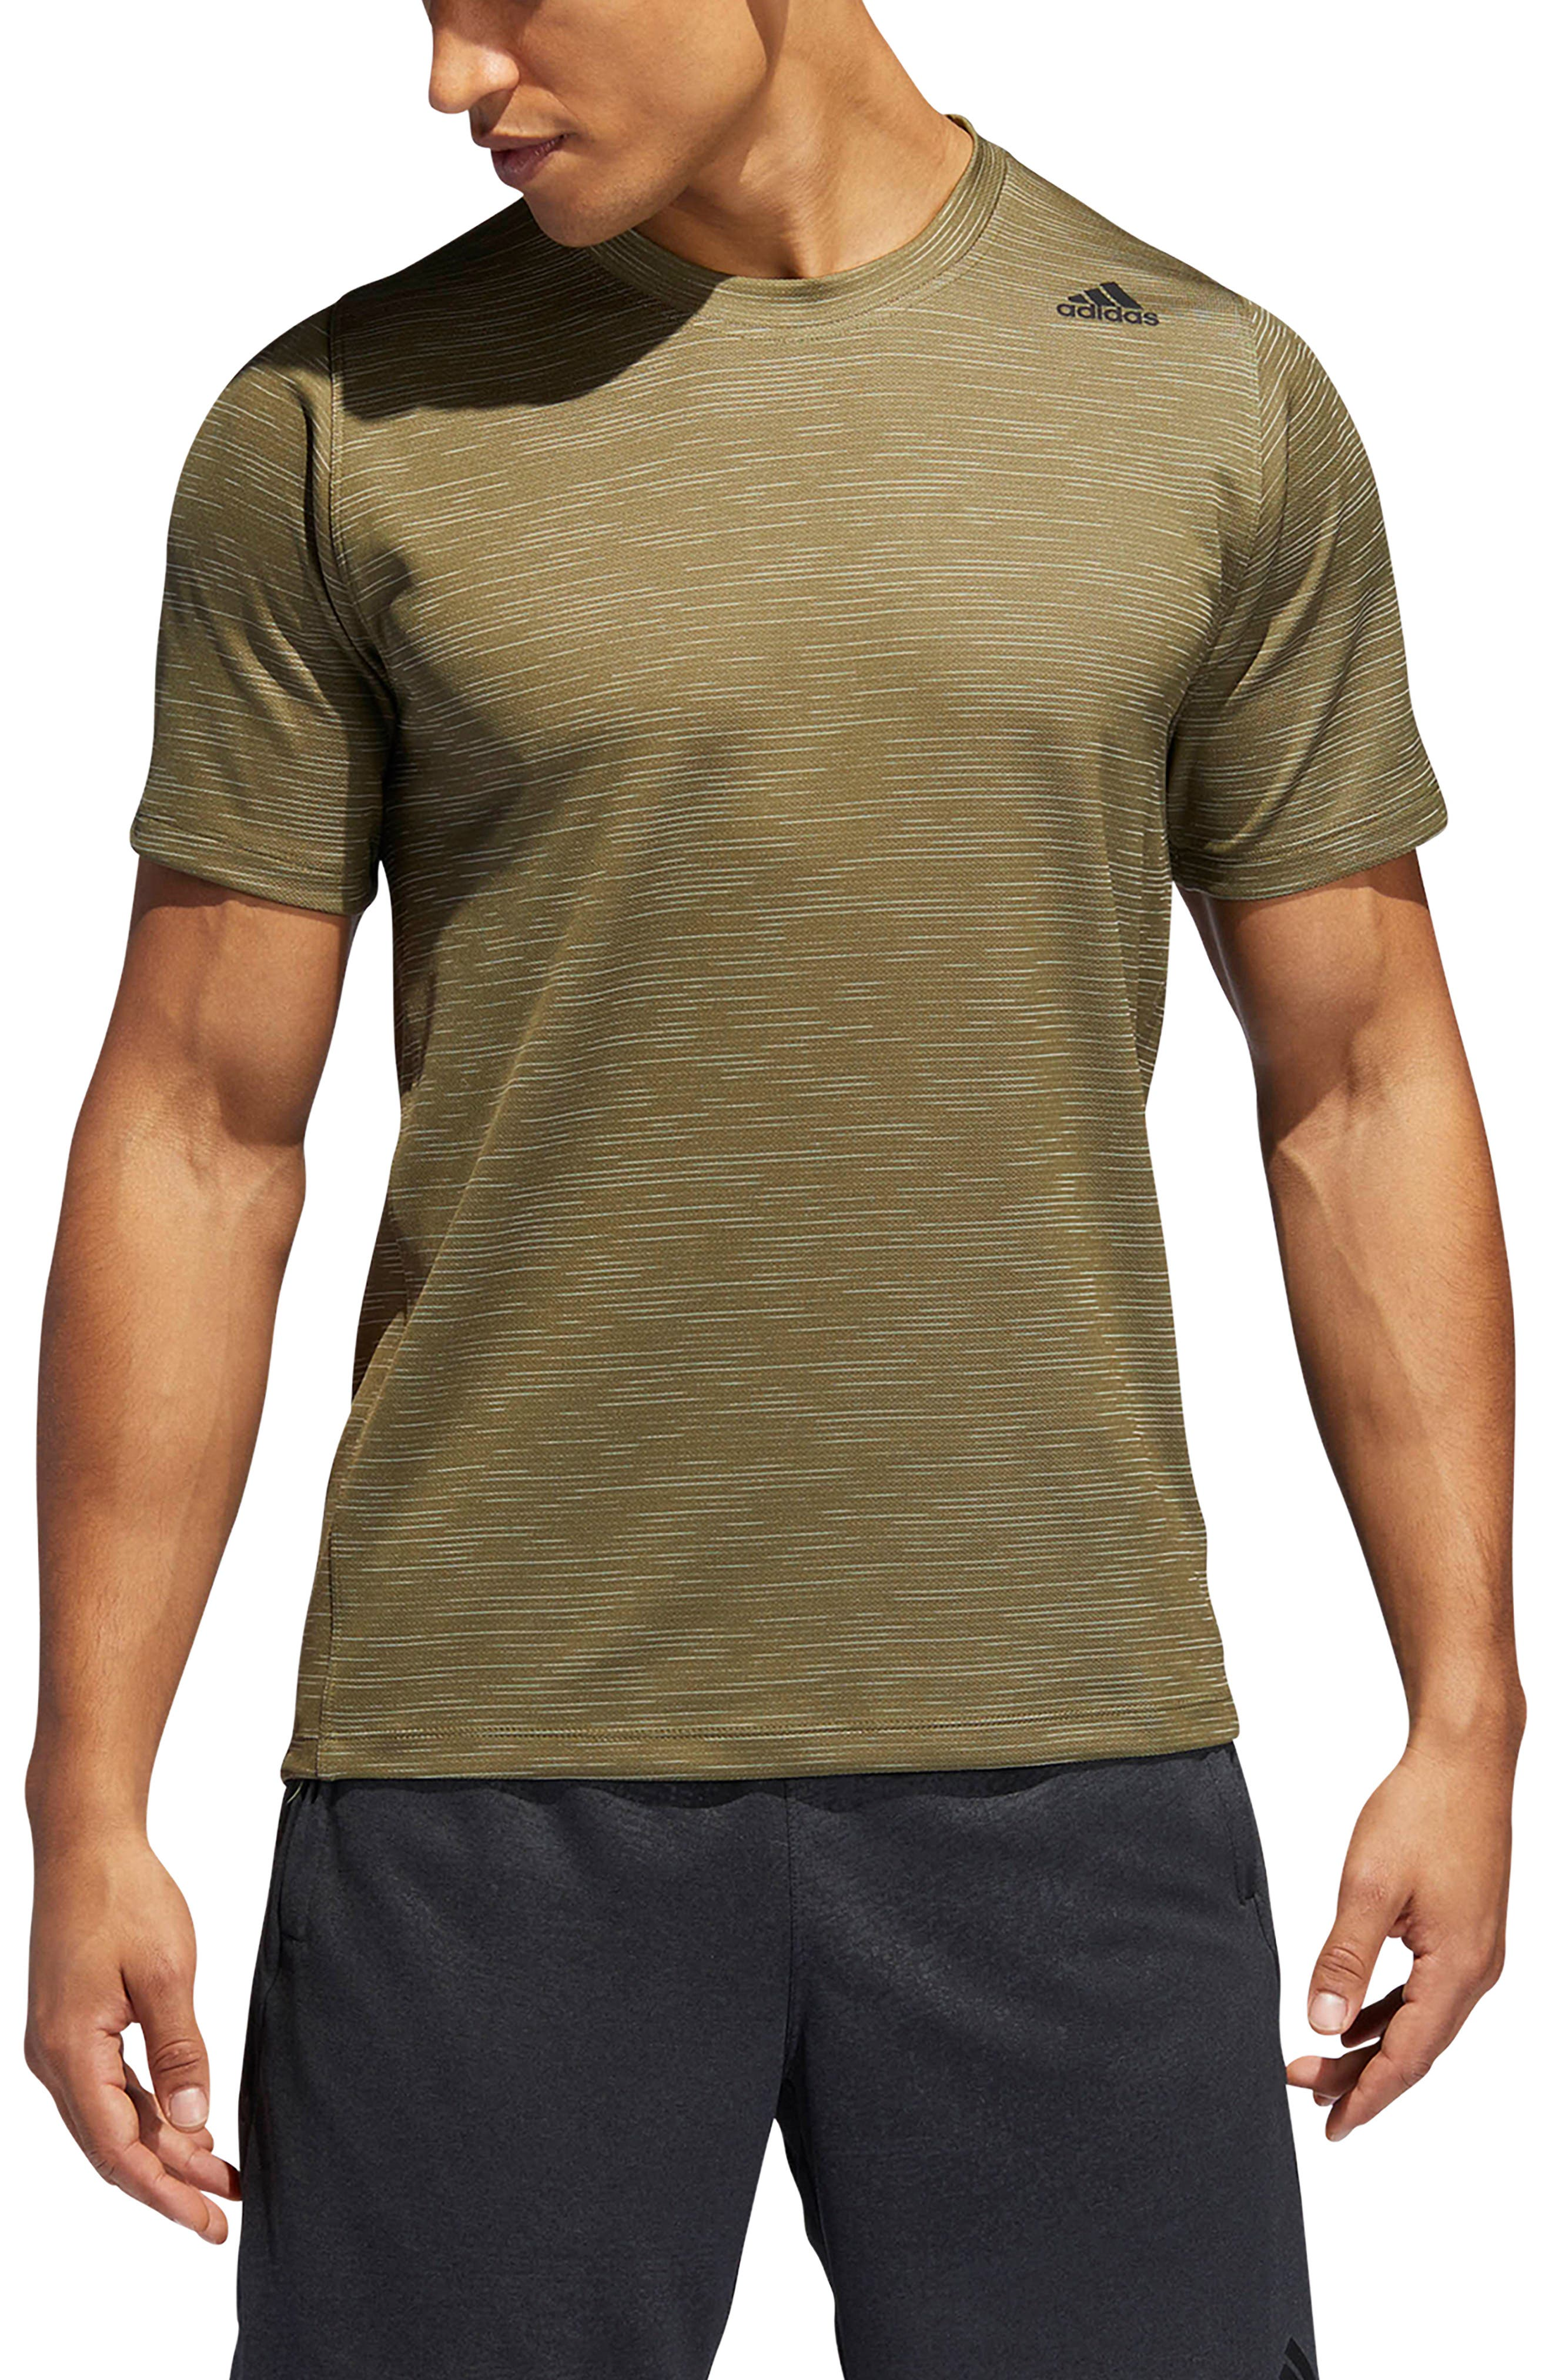 Adidas Freelift Tech Climacool Fitted T-Shirt, Green